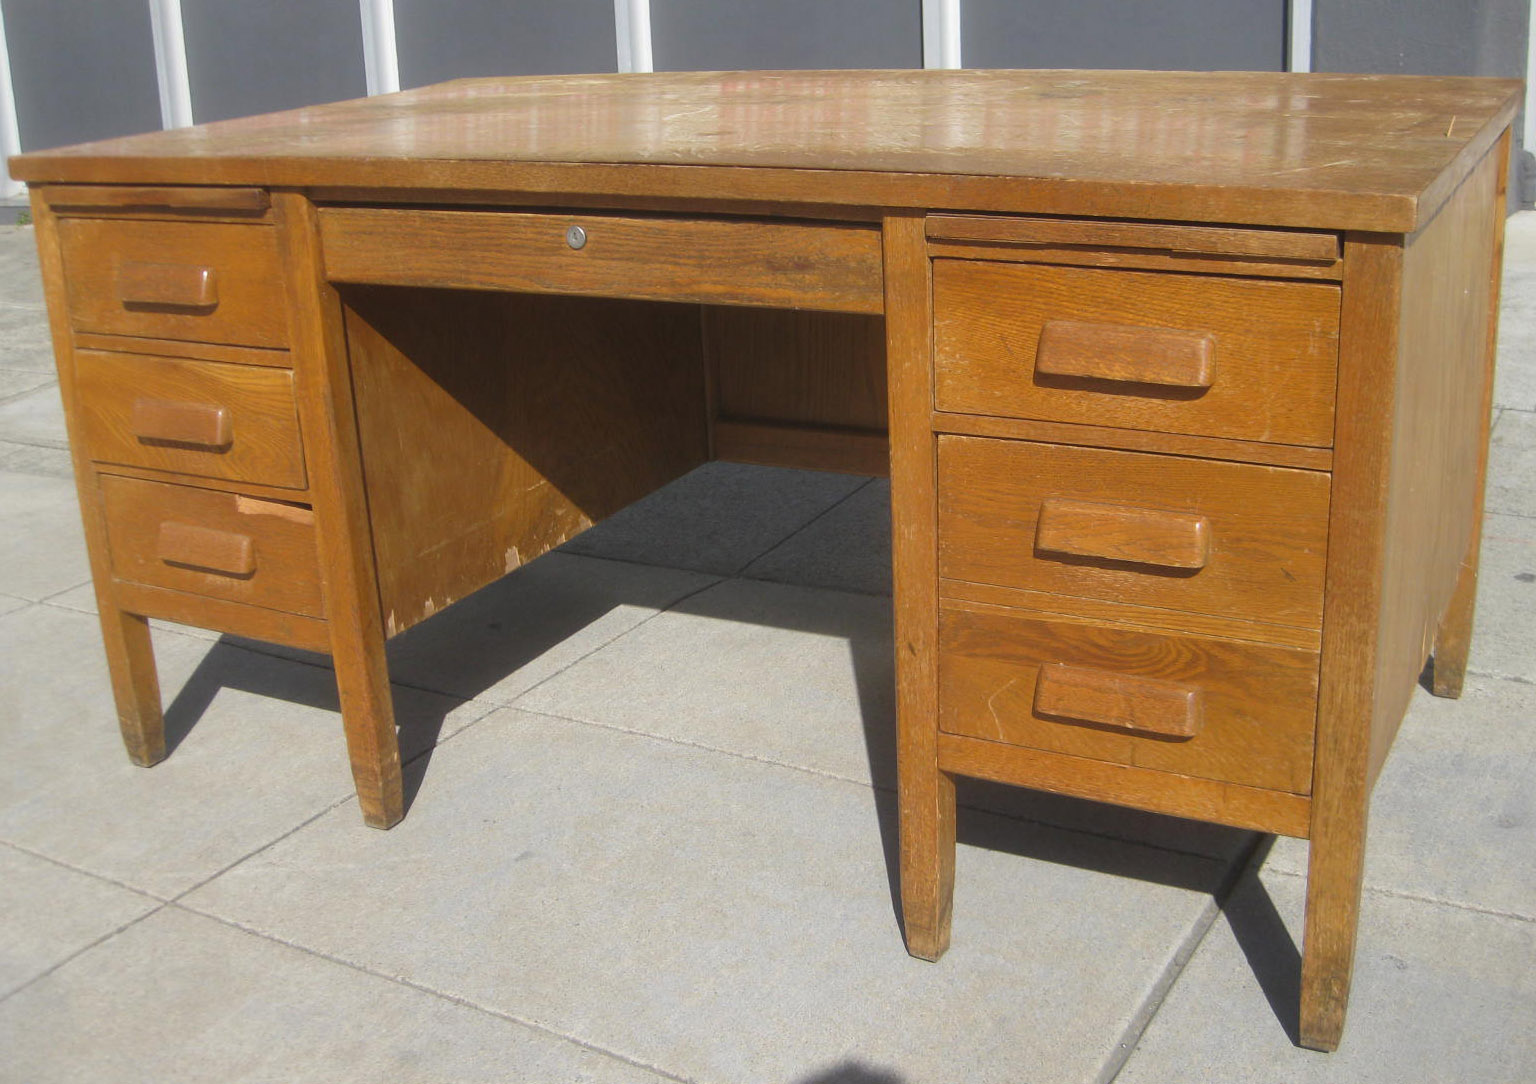 SOLD - Oak Teacher's Desk - $50 - UHURU FURNITURE & COLLECTIBLES: SOLD - Oak Teacher's Desk - $50